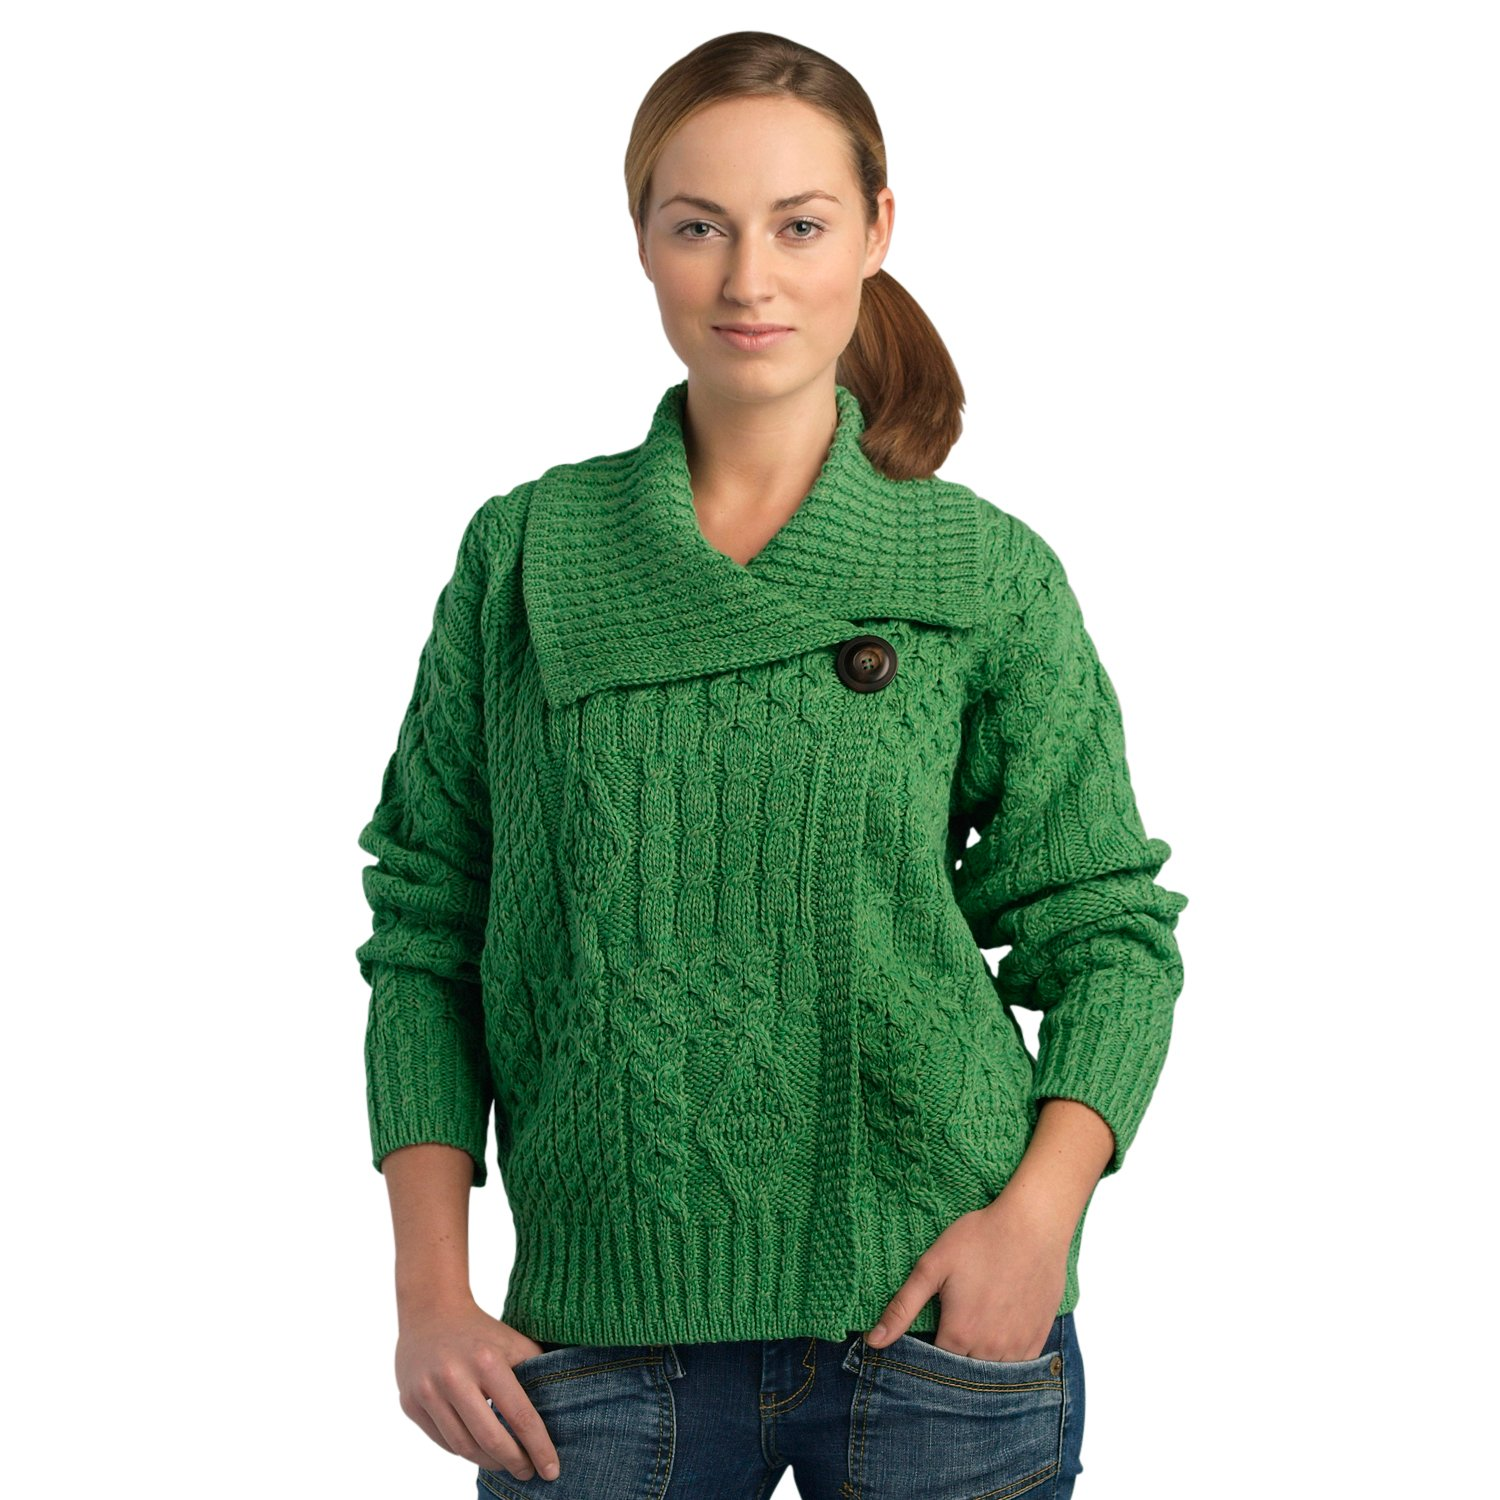 100% Soft Irish Merino Wool One Button Aran Ladies Sweater by West End Knitwear